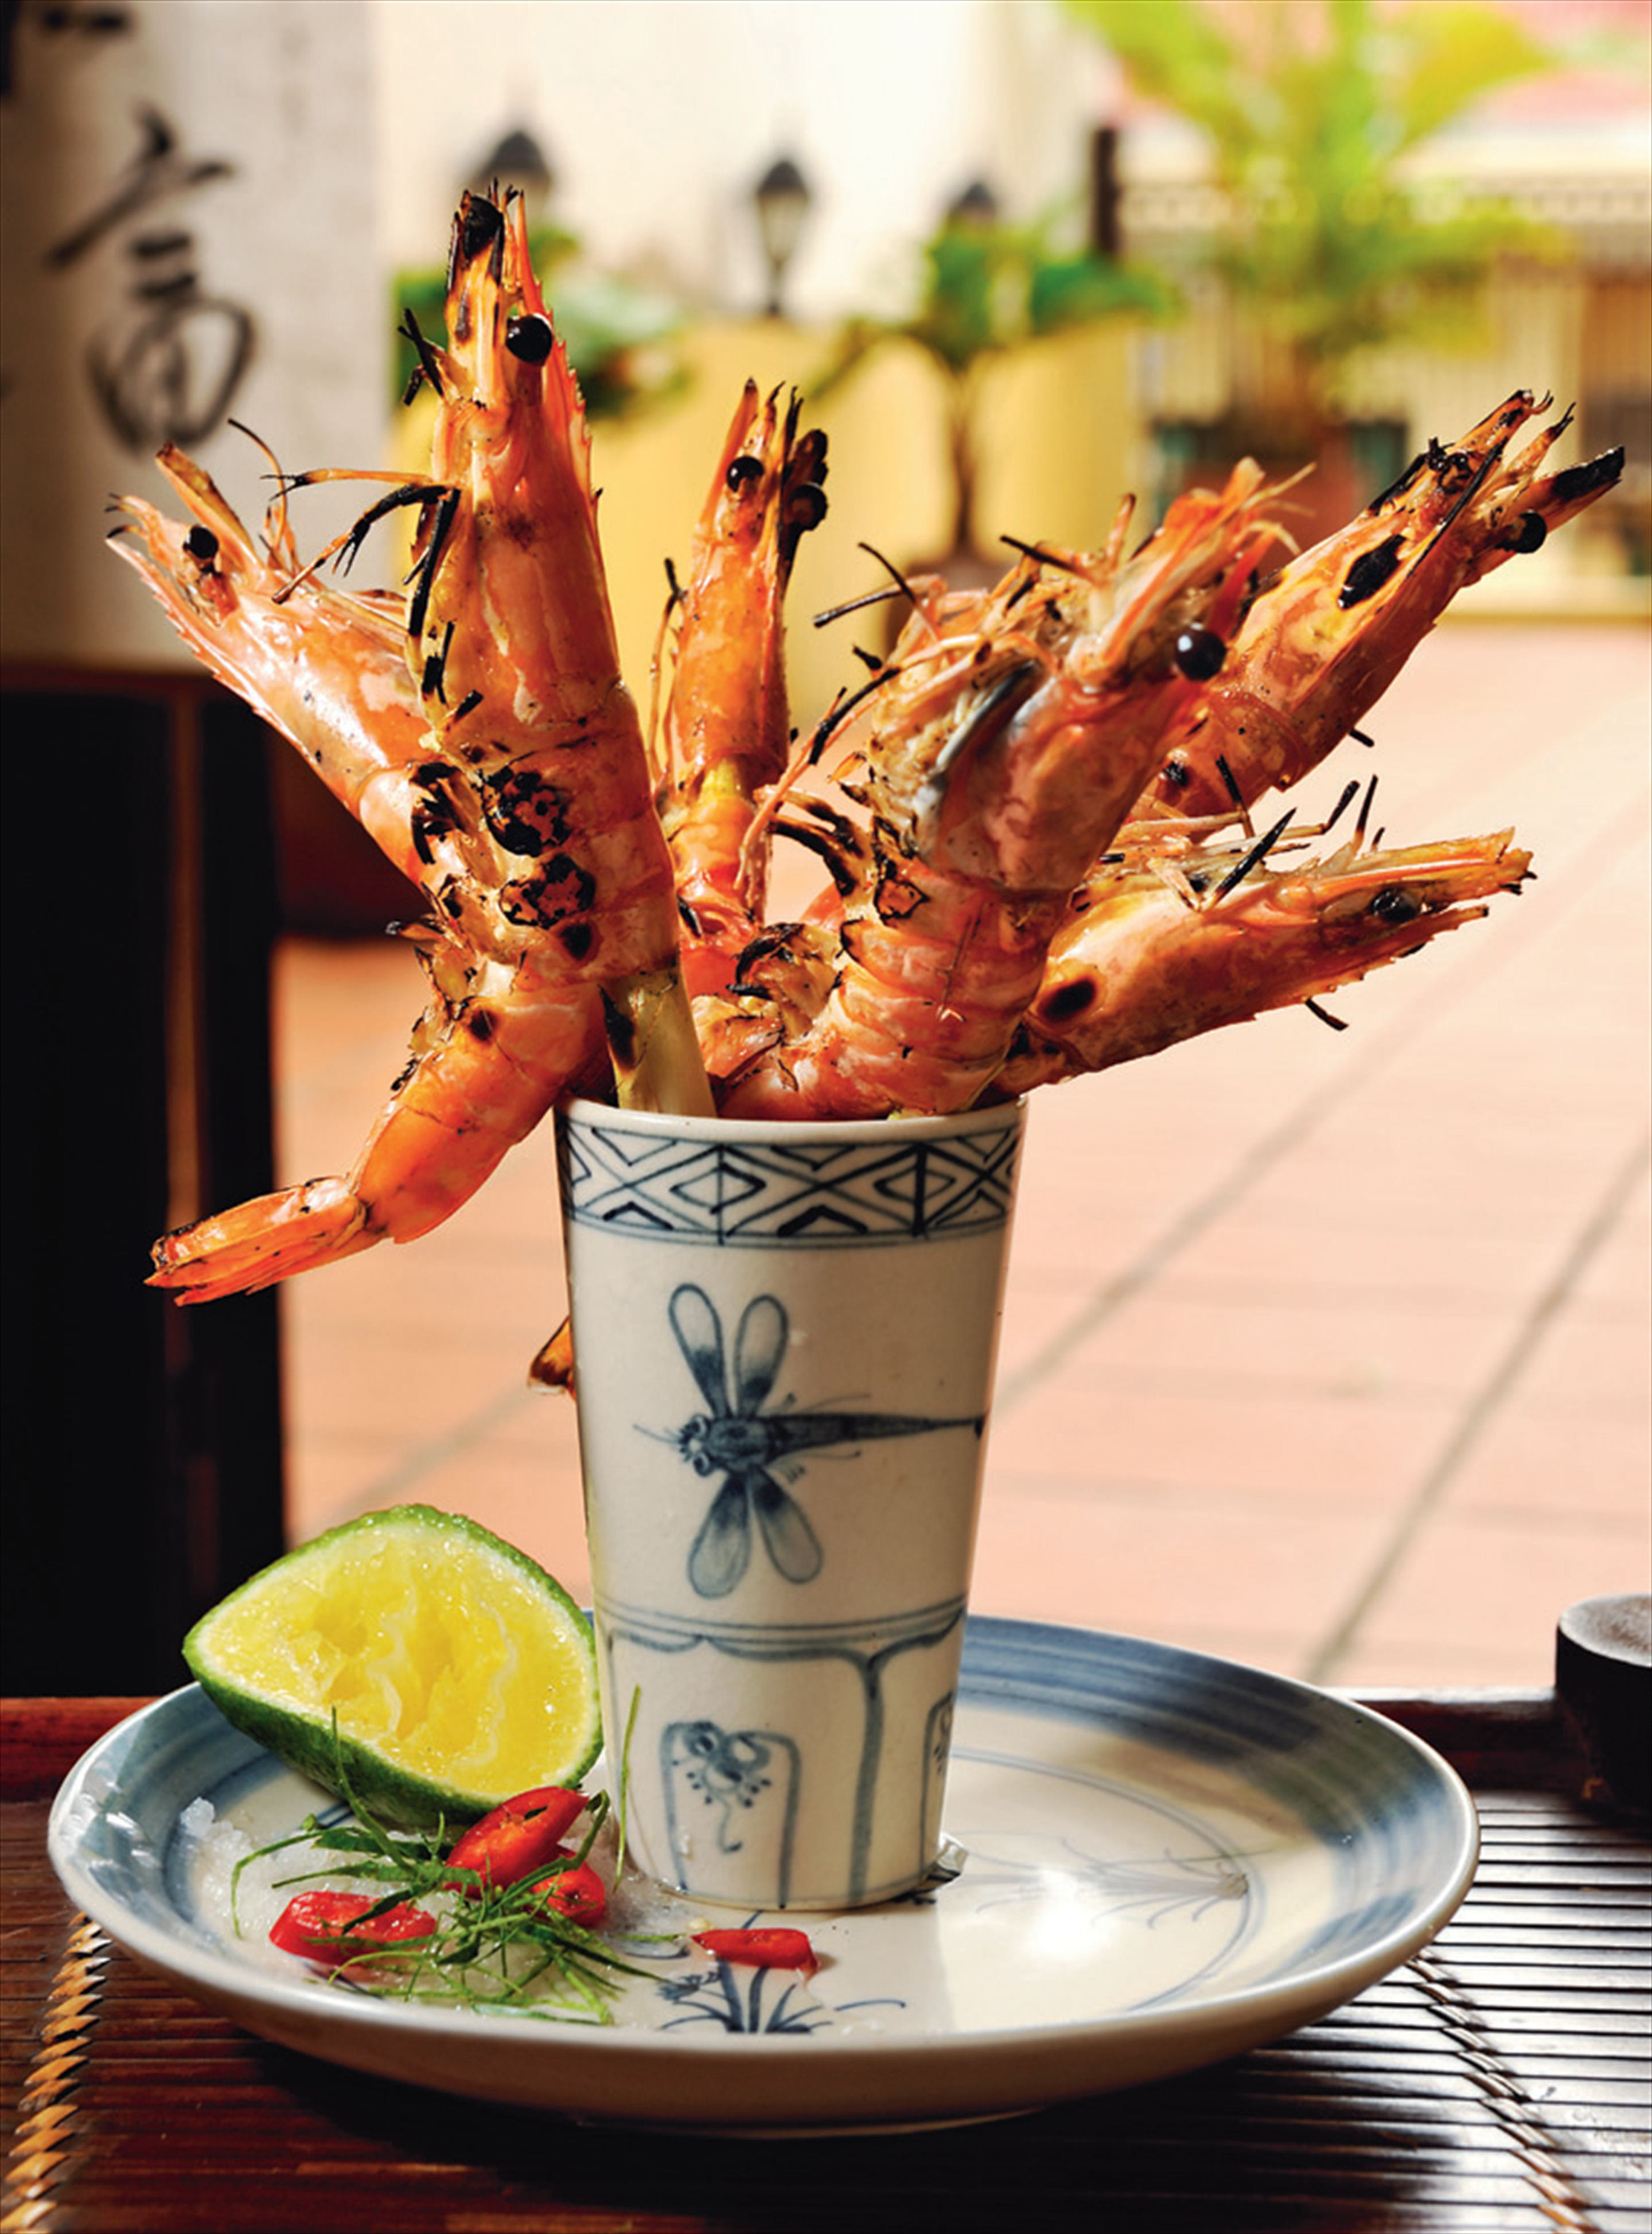 Barbecued prawns with lemongrass